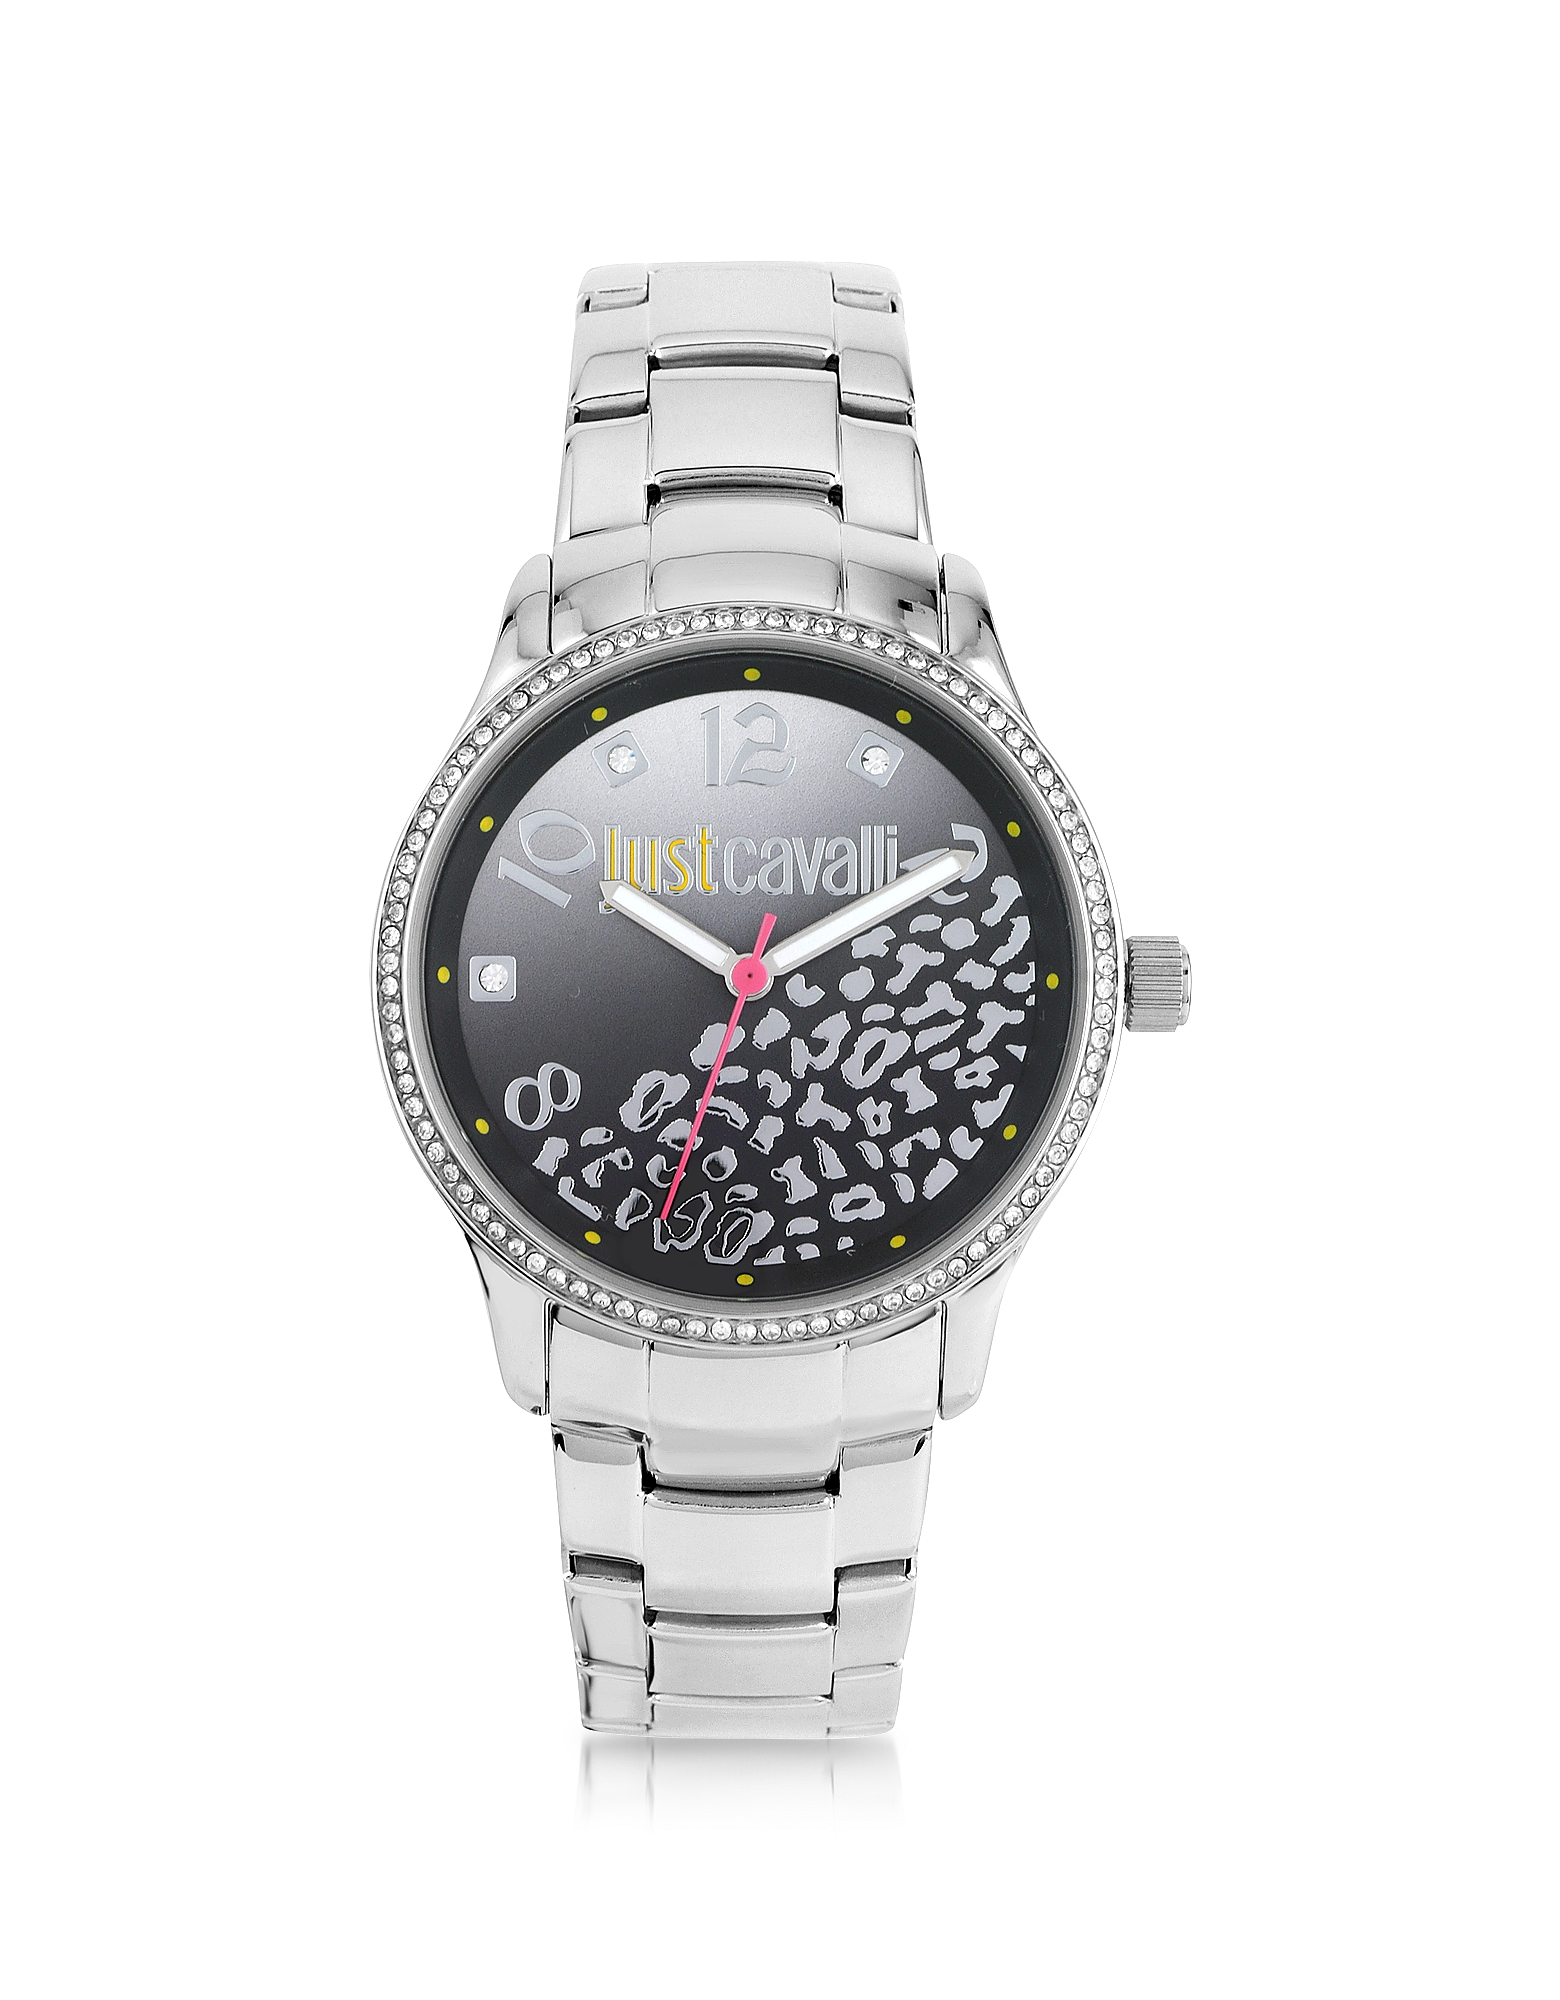 Image of Just Cavalli Designer Women's Watches, Huge JC 3H Black Dial Silver Stainless Steel Women's Watch